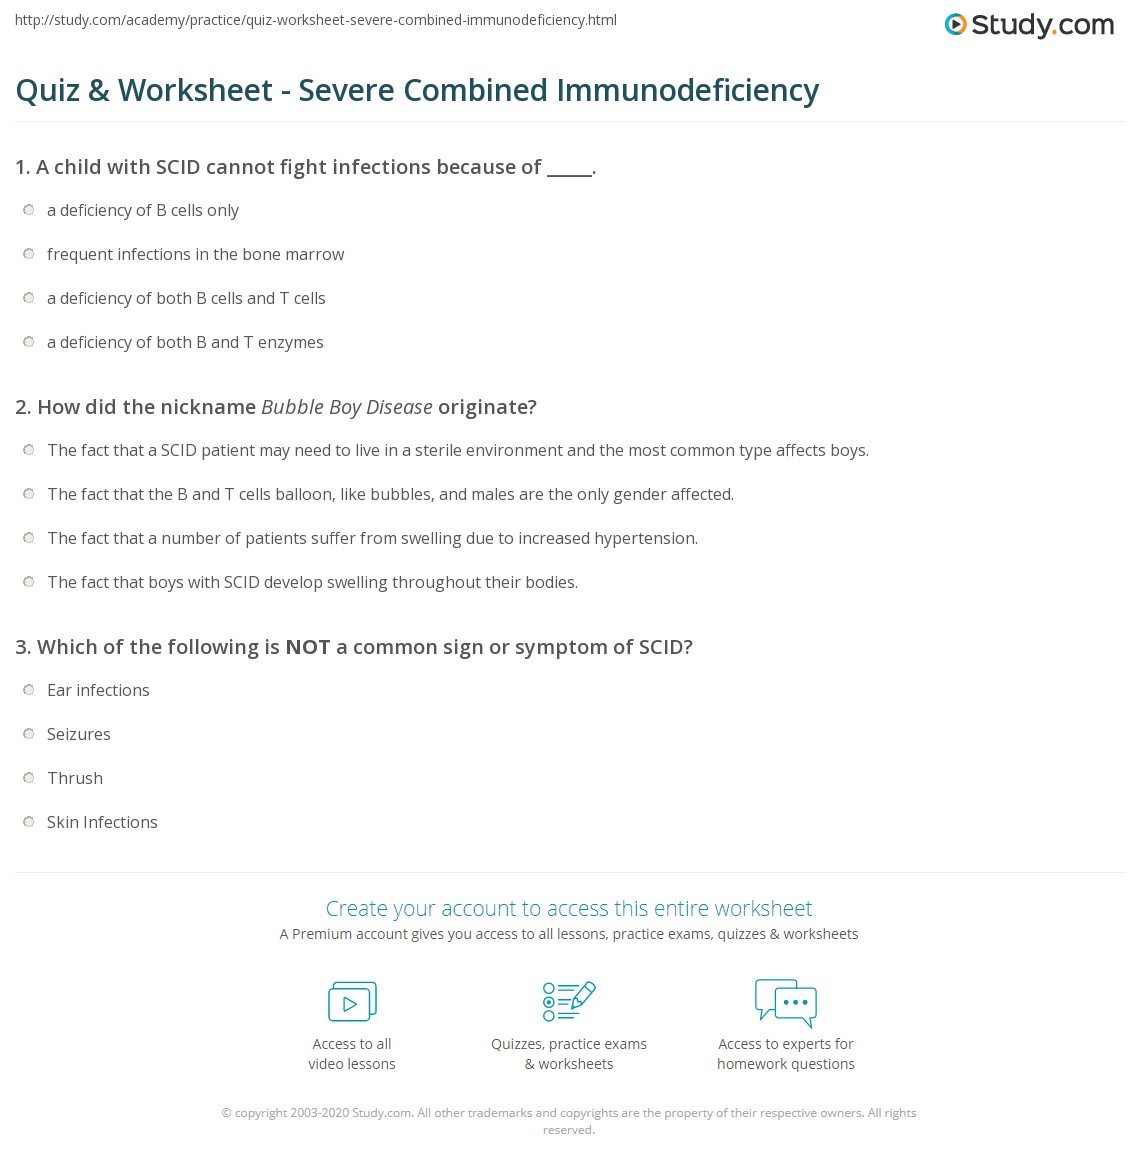 Severe combined immunodeficiency in children: possible causes, symptoms and ways of treatment